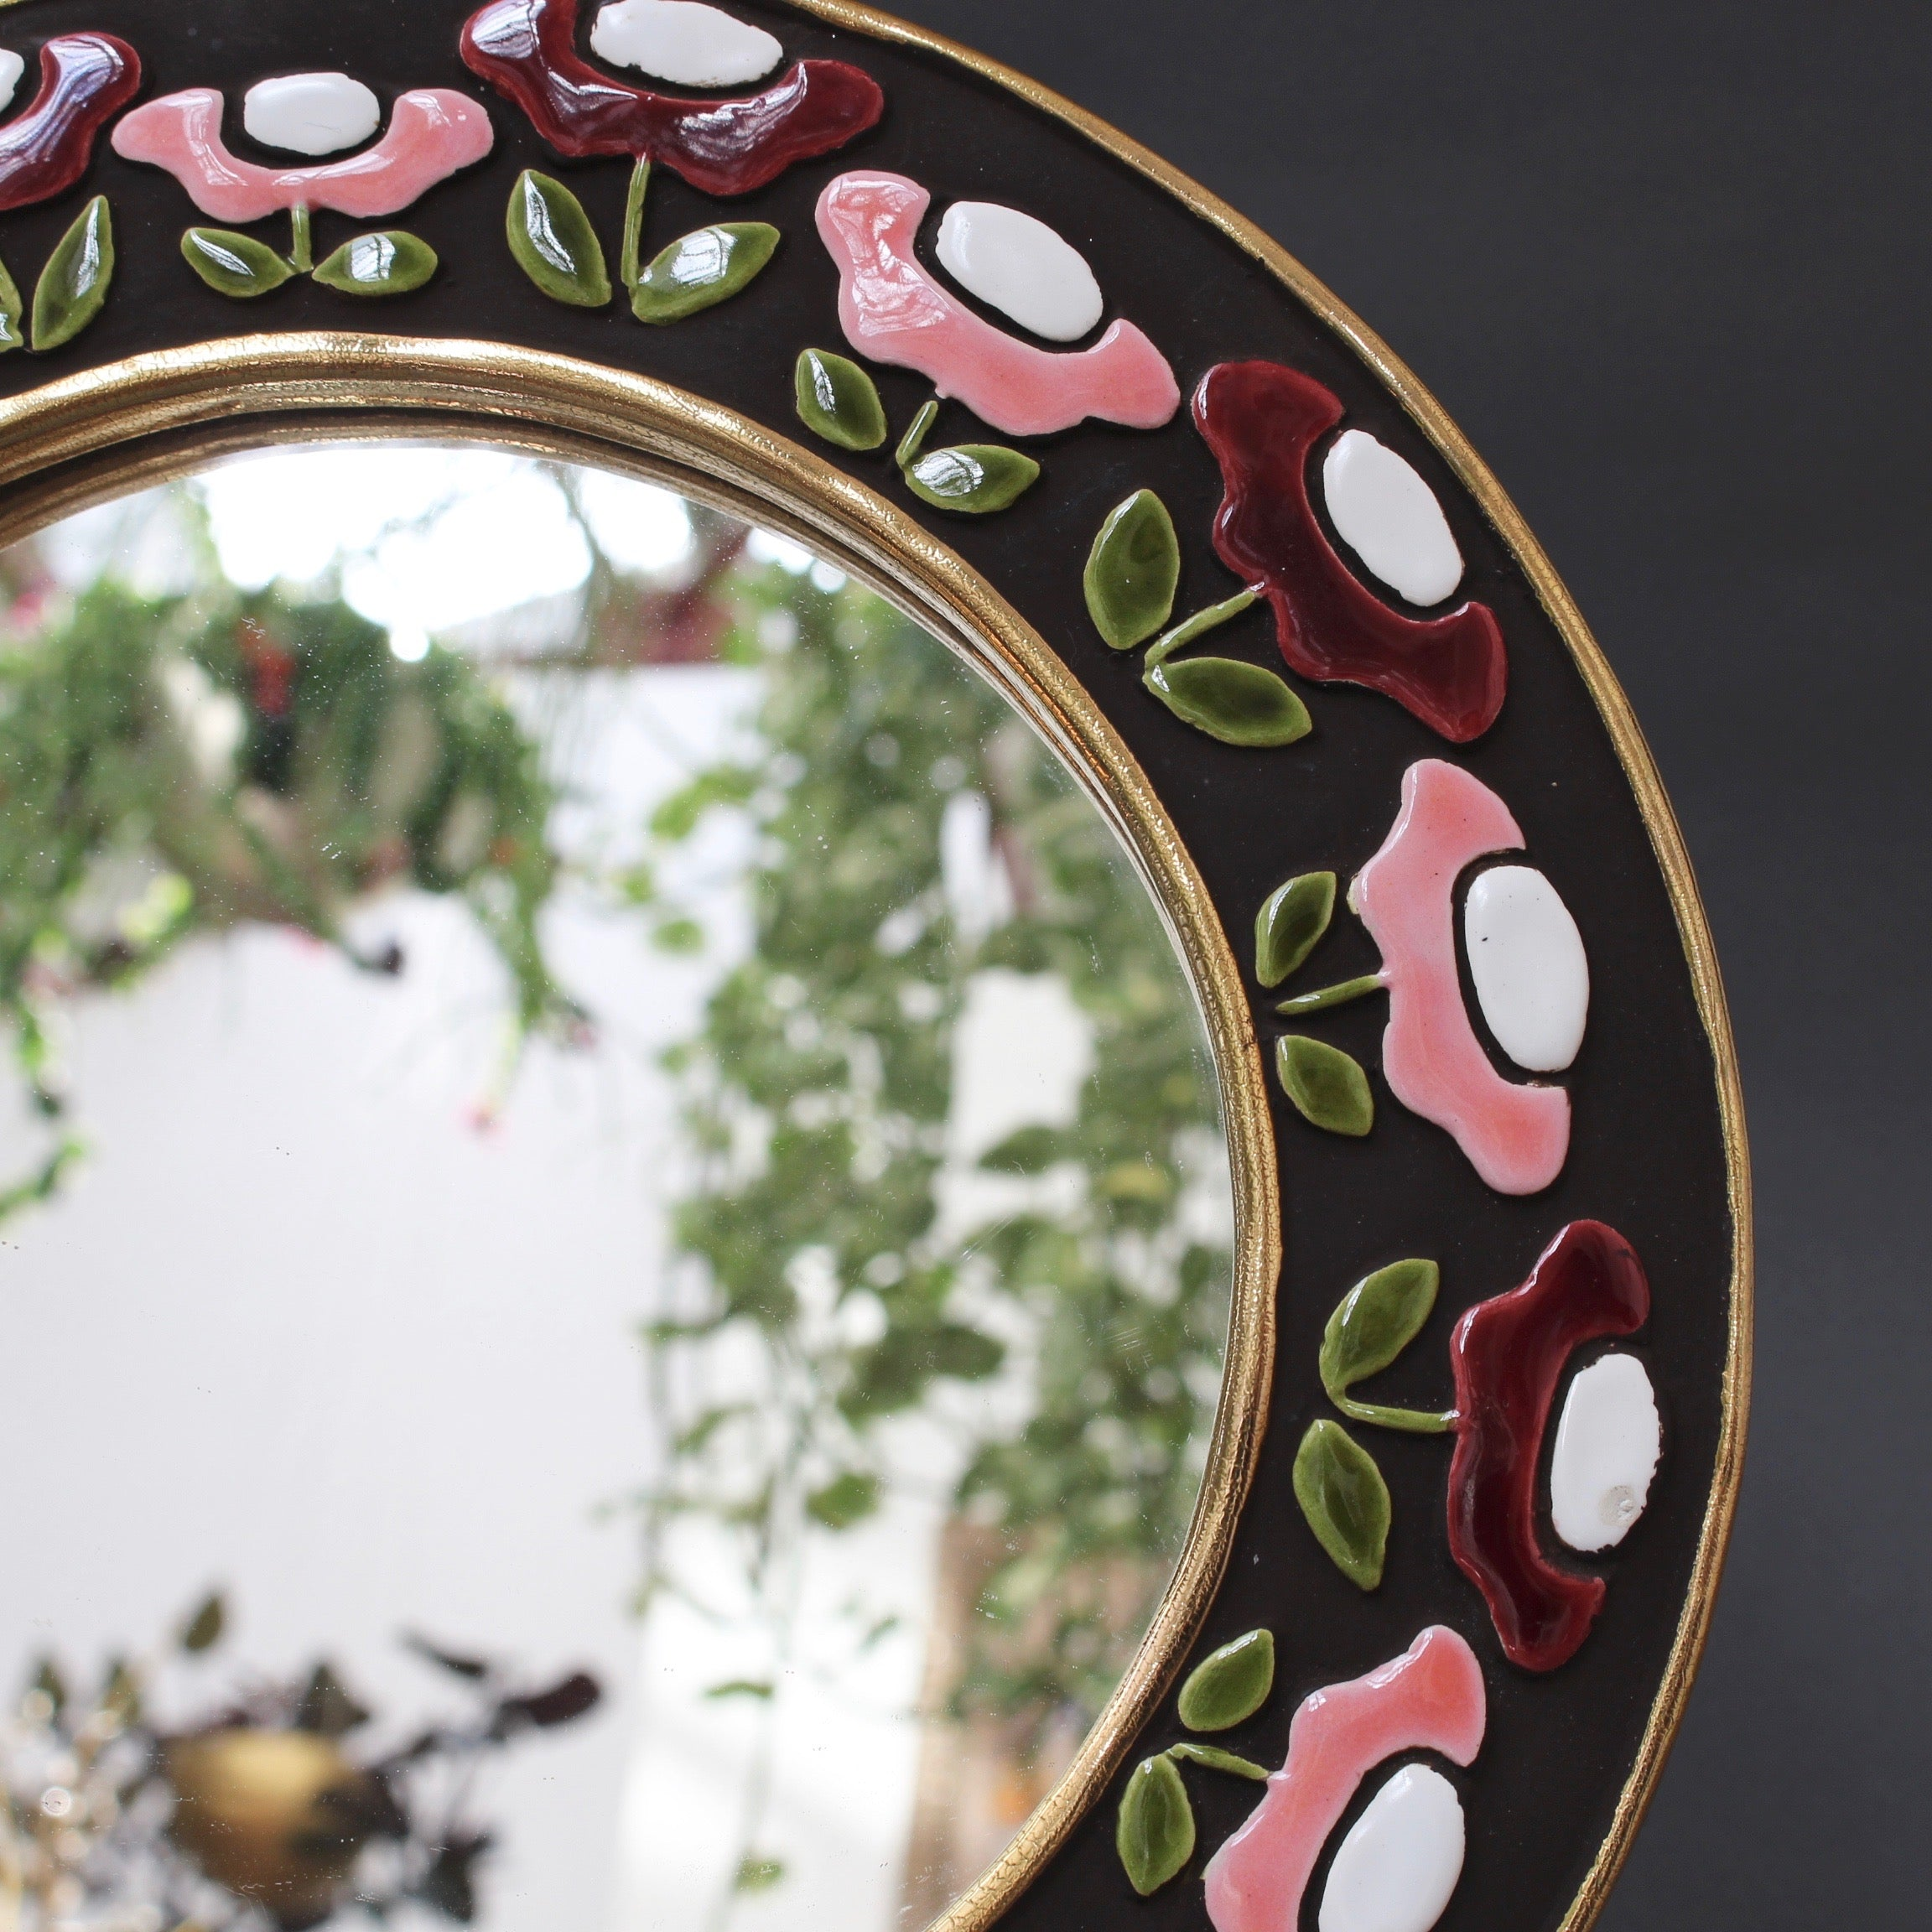 Ceramic Wall Mirror with Flower Motif by Mithé Espelt (circa 1960s)